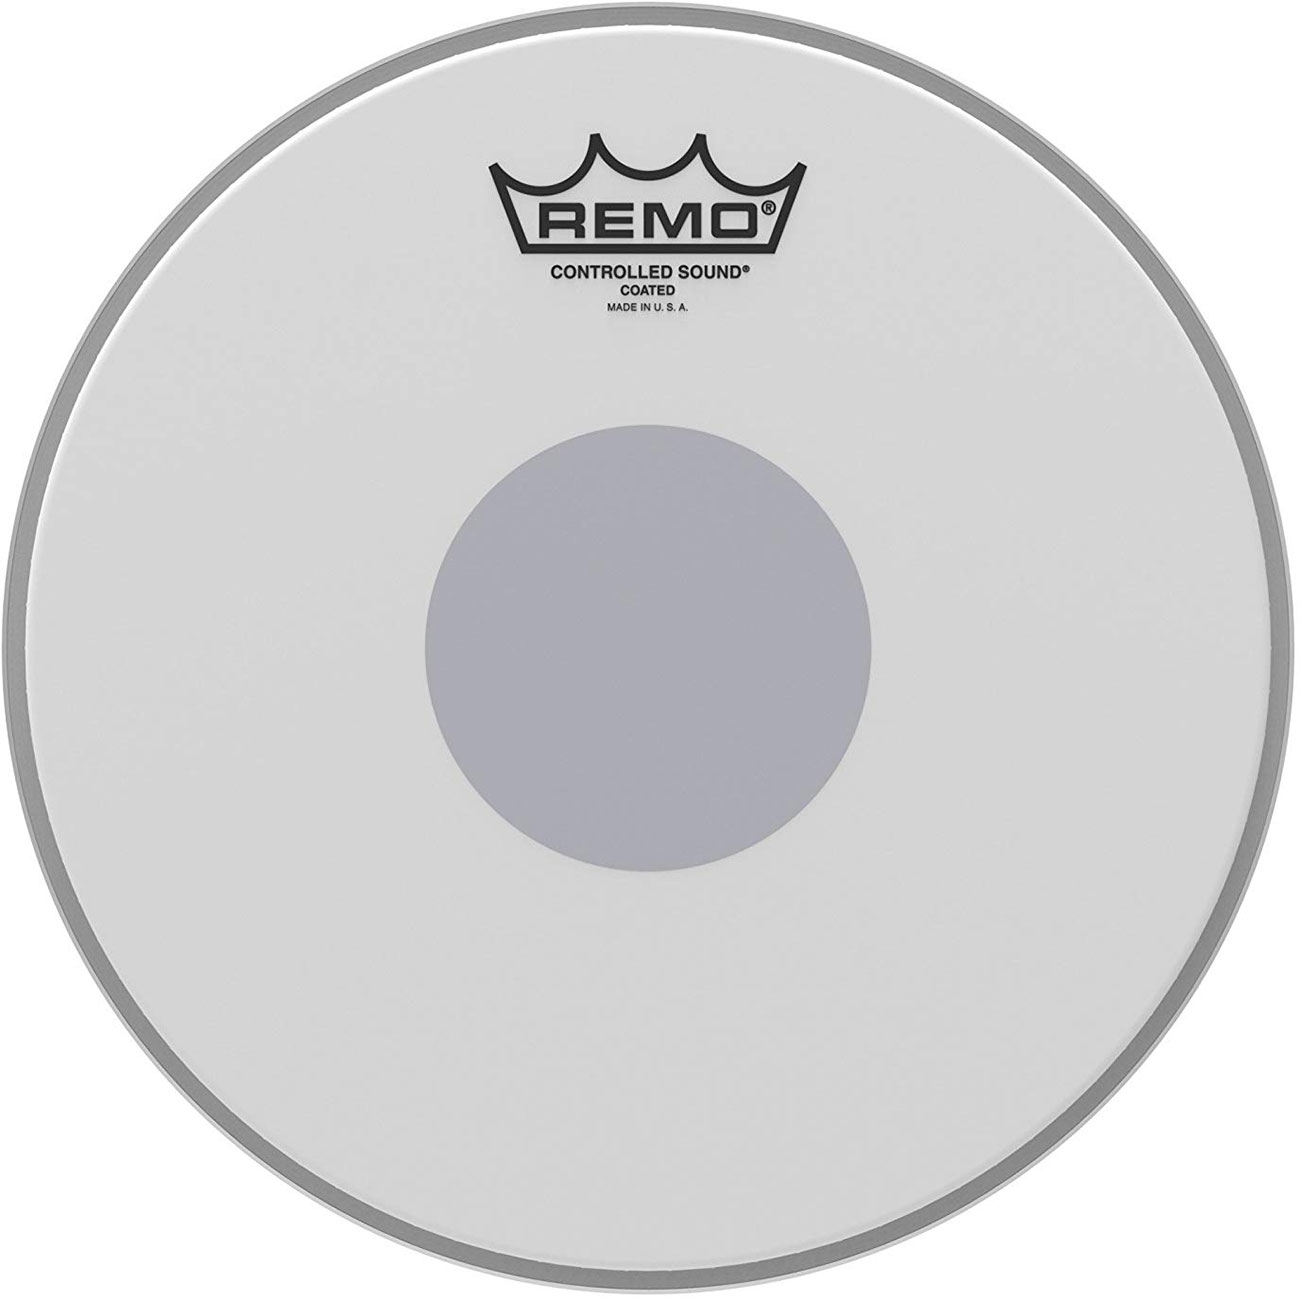 """Remo 15"""" Controlled Sound Coated Drum Head with Black Dot"""